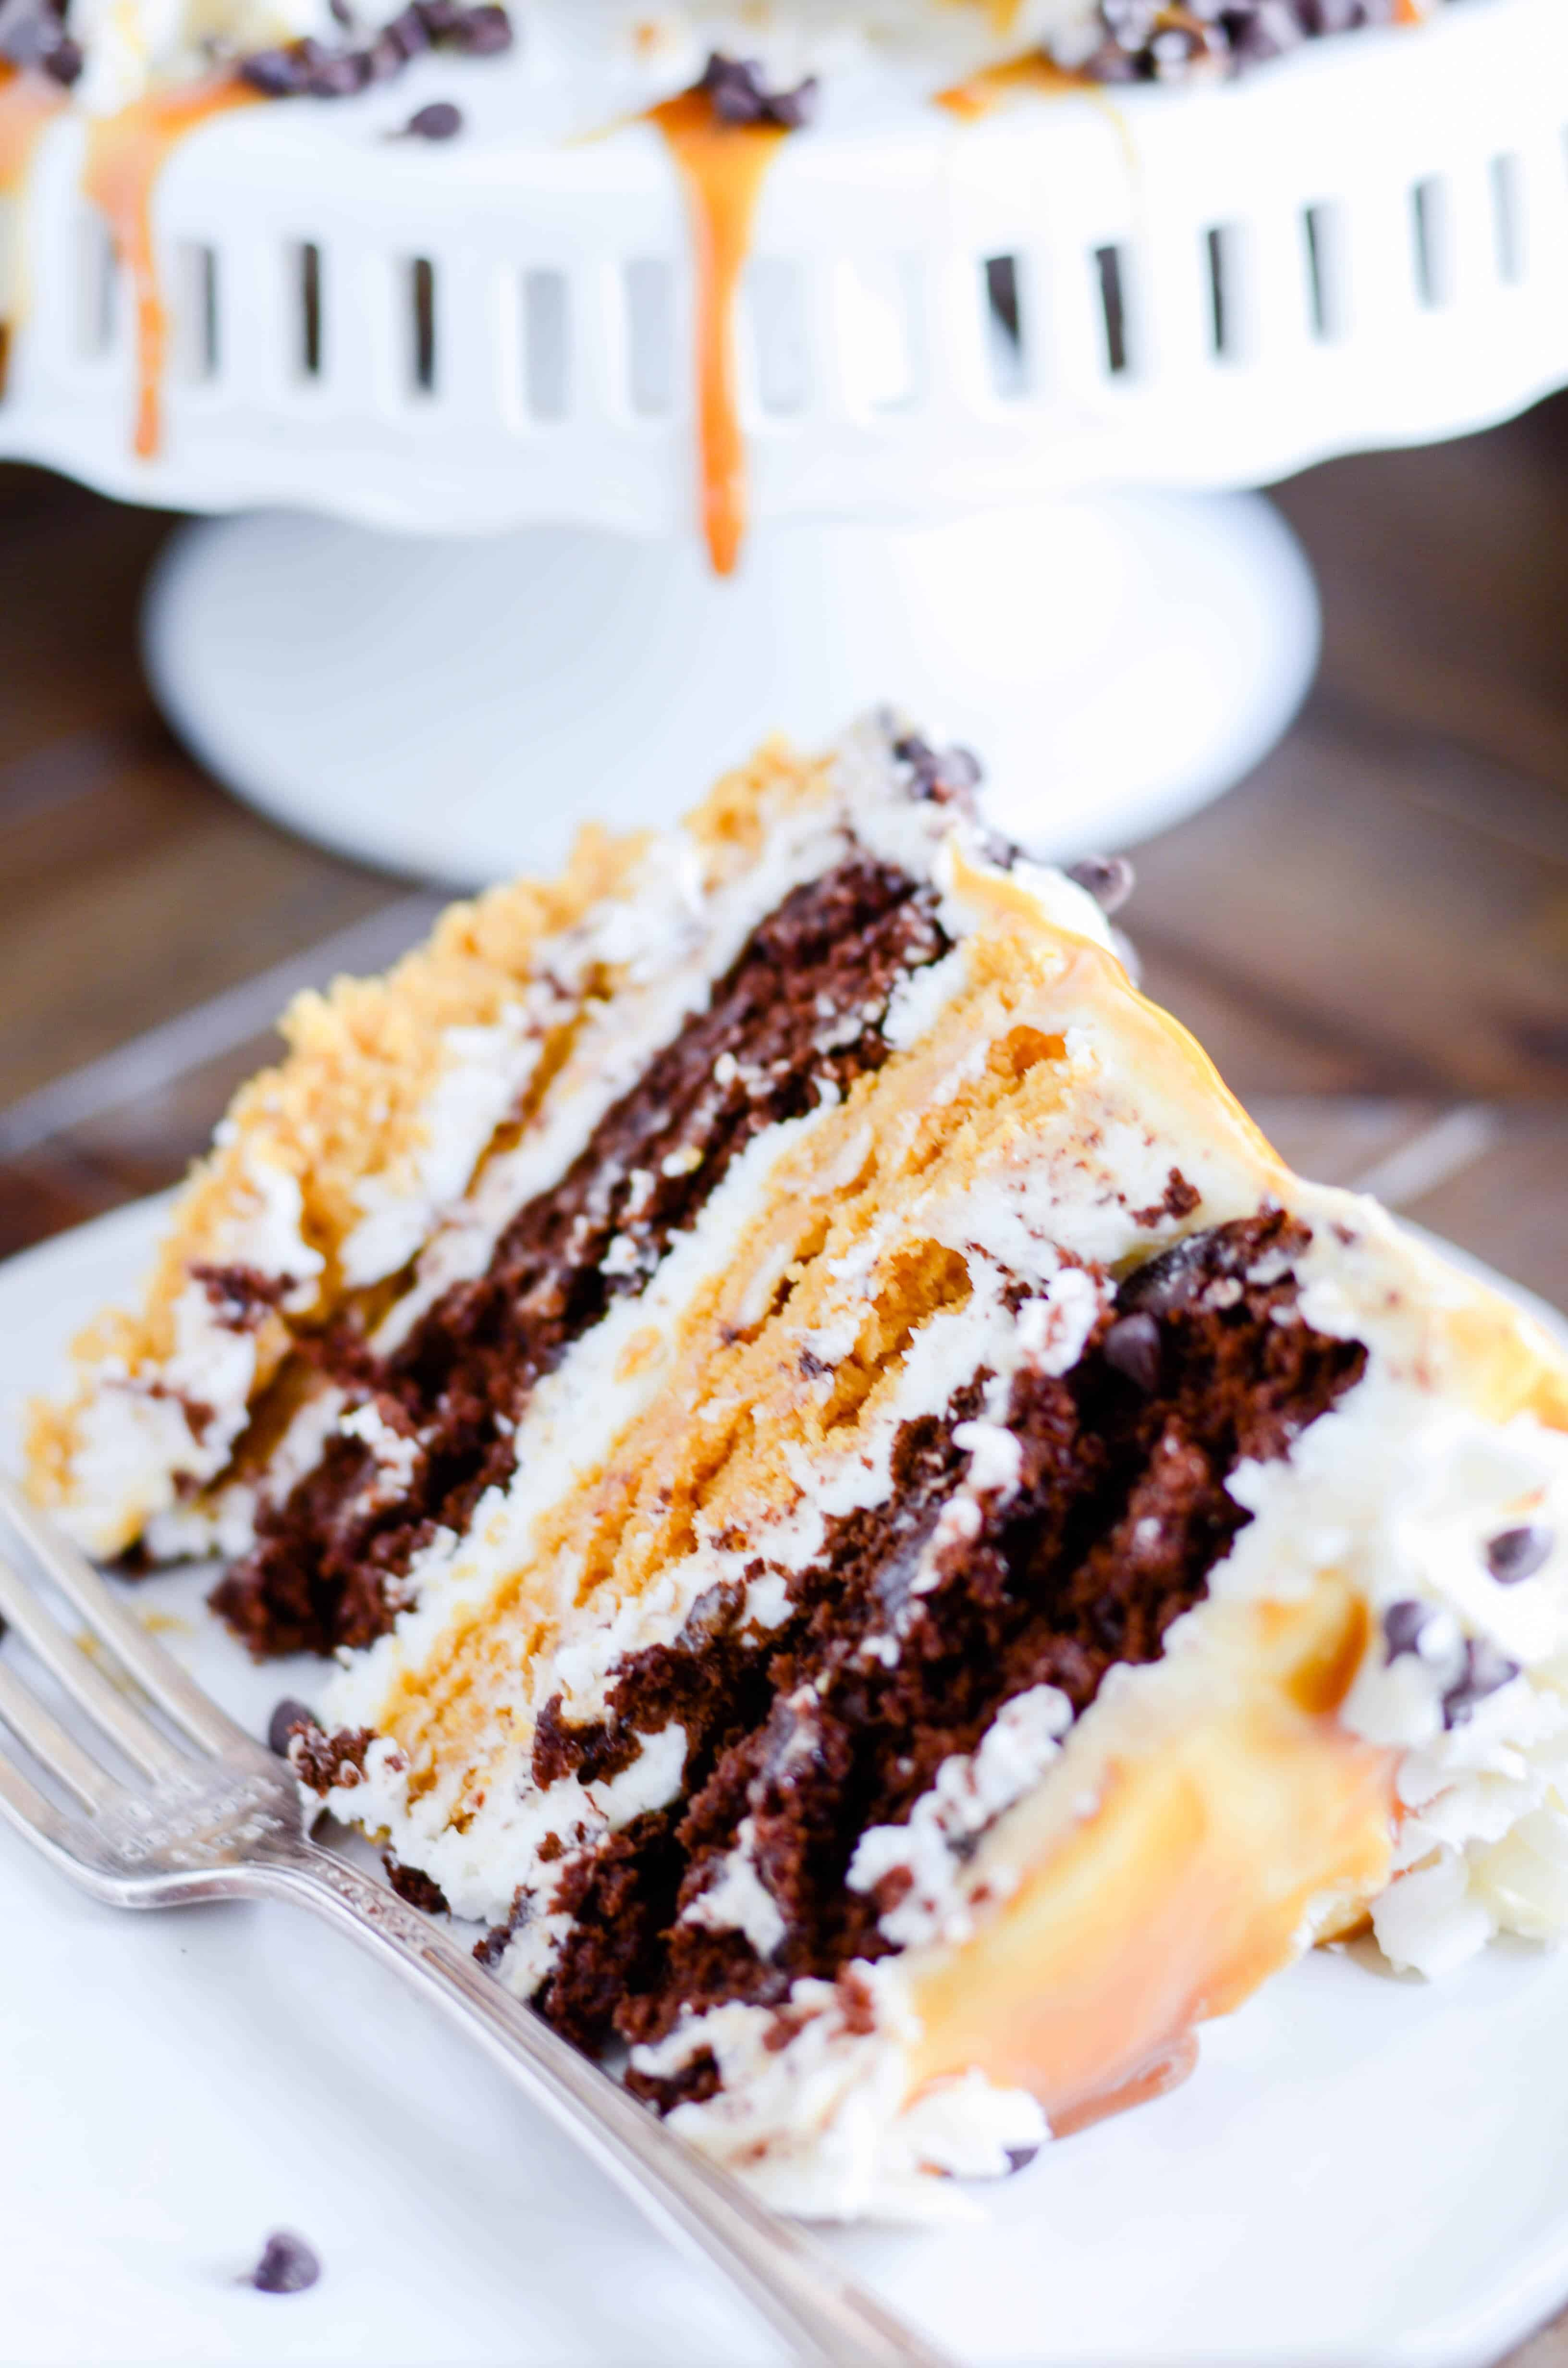 You have to try this cake made with layers of pumpkin cake and pumpkin chocolate cake and cream cheese frosting. And don't forget the butterscotch caramel!!